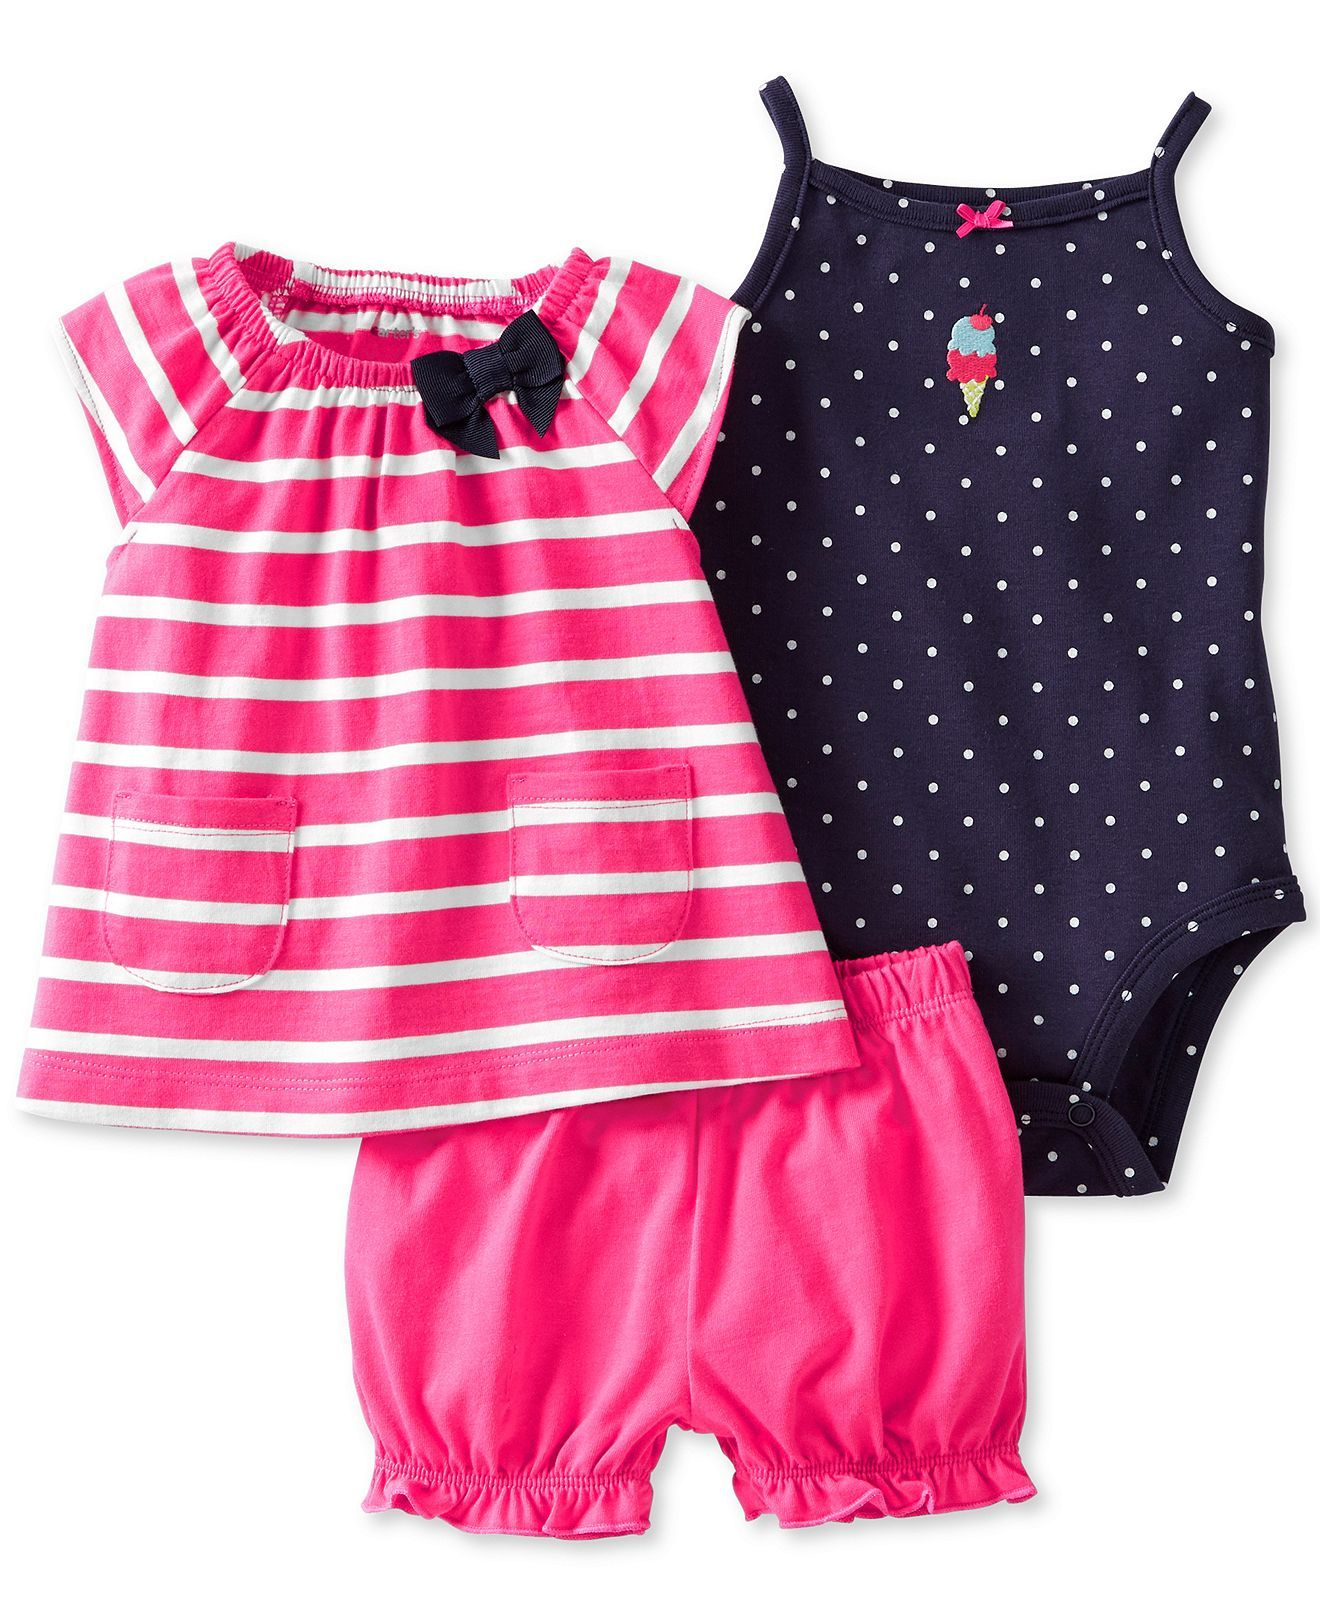 53cae119b Carter's Baby Girls' 3-Piece Top, Bodysuit & Diaper Cover Set - Kids Baby  Girl (0-24 months) - Macy's